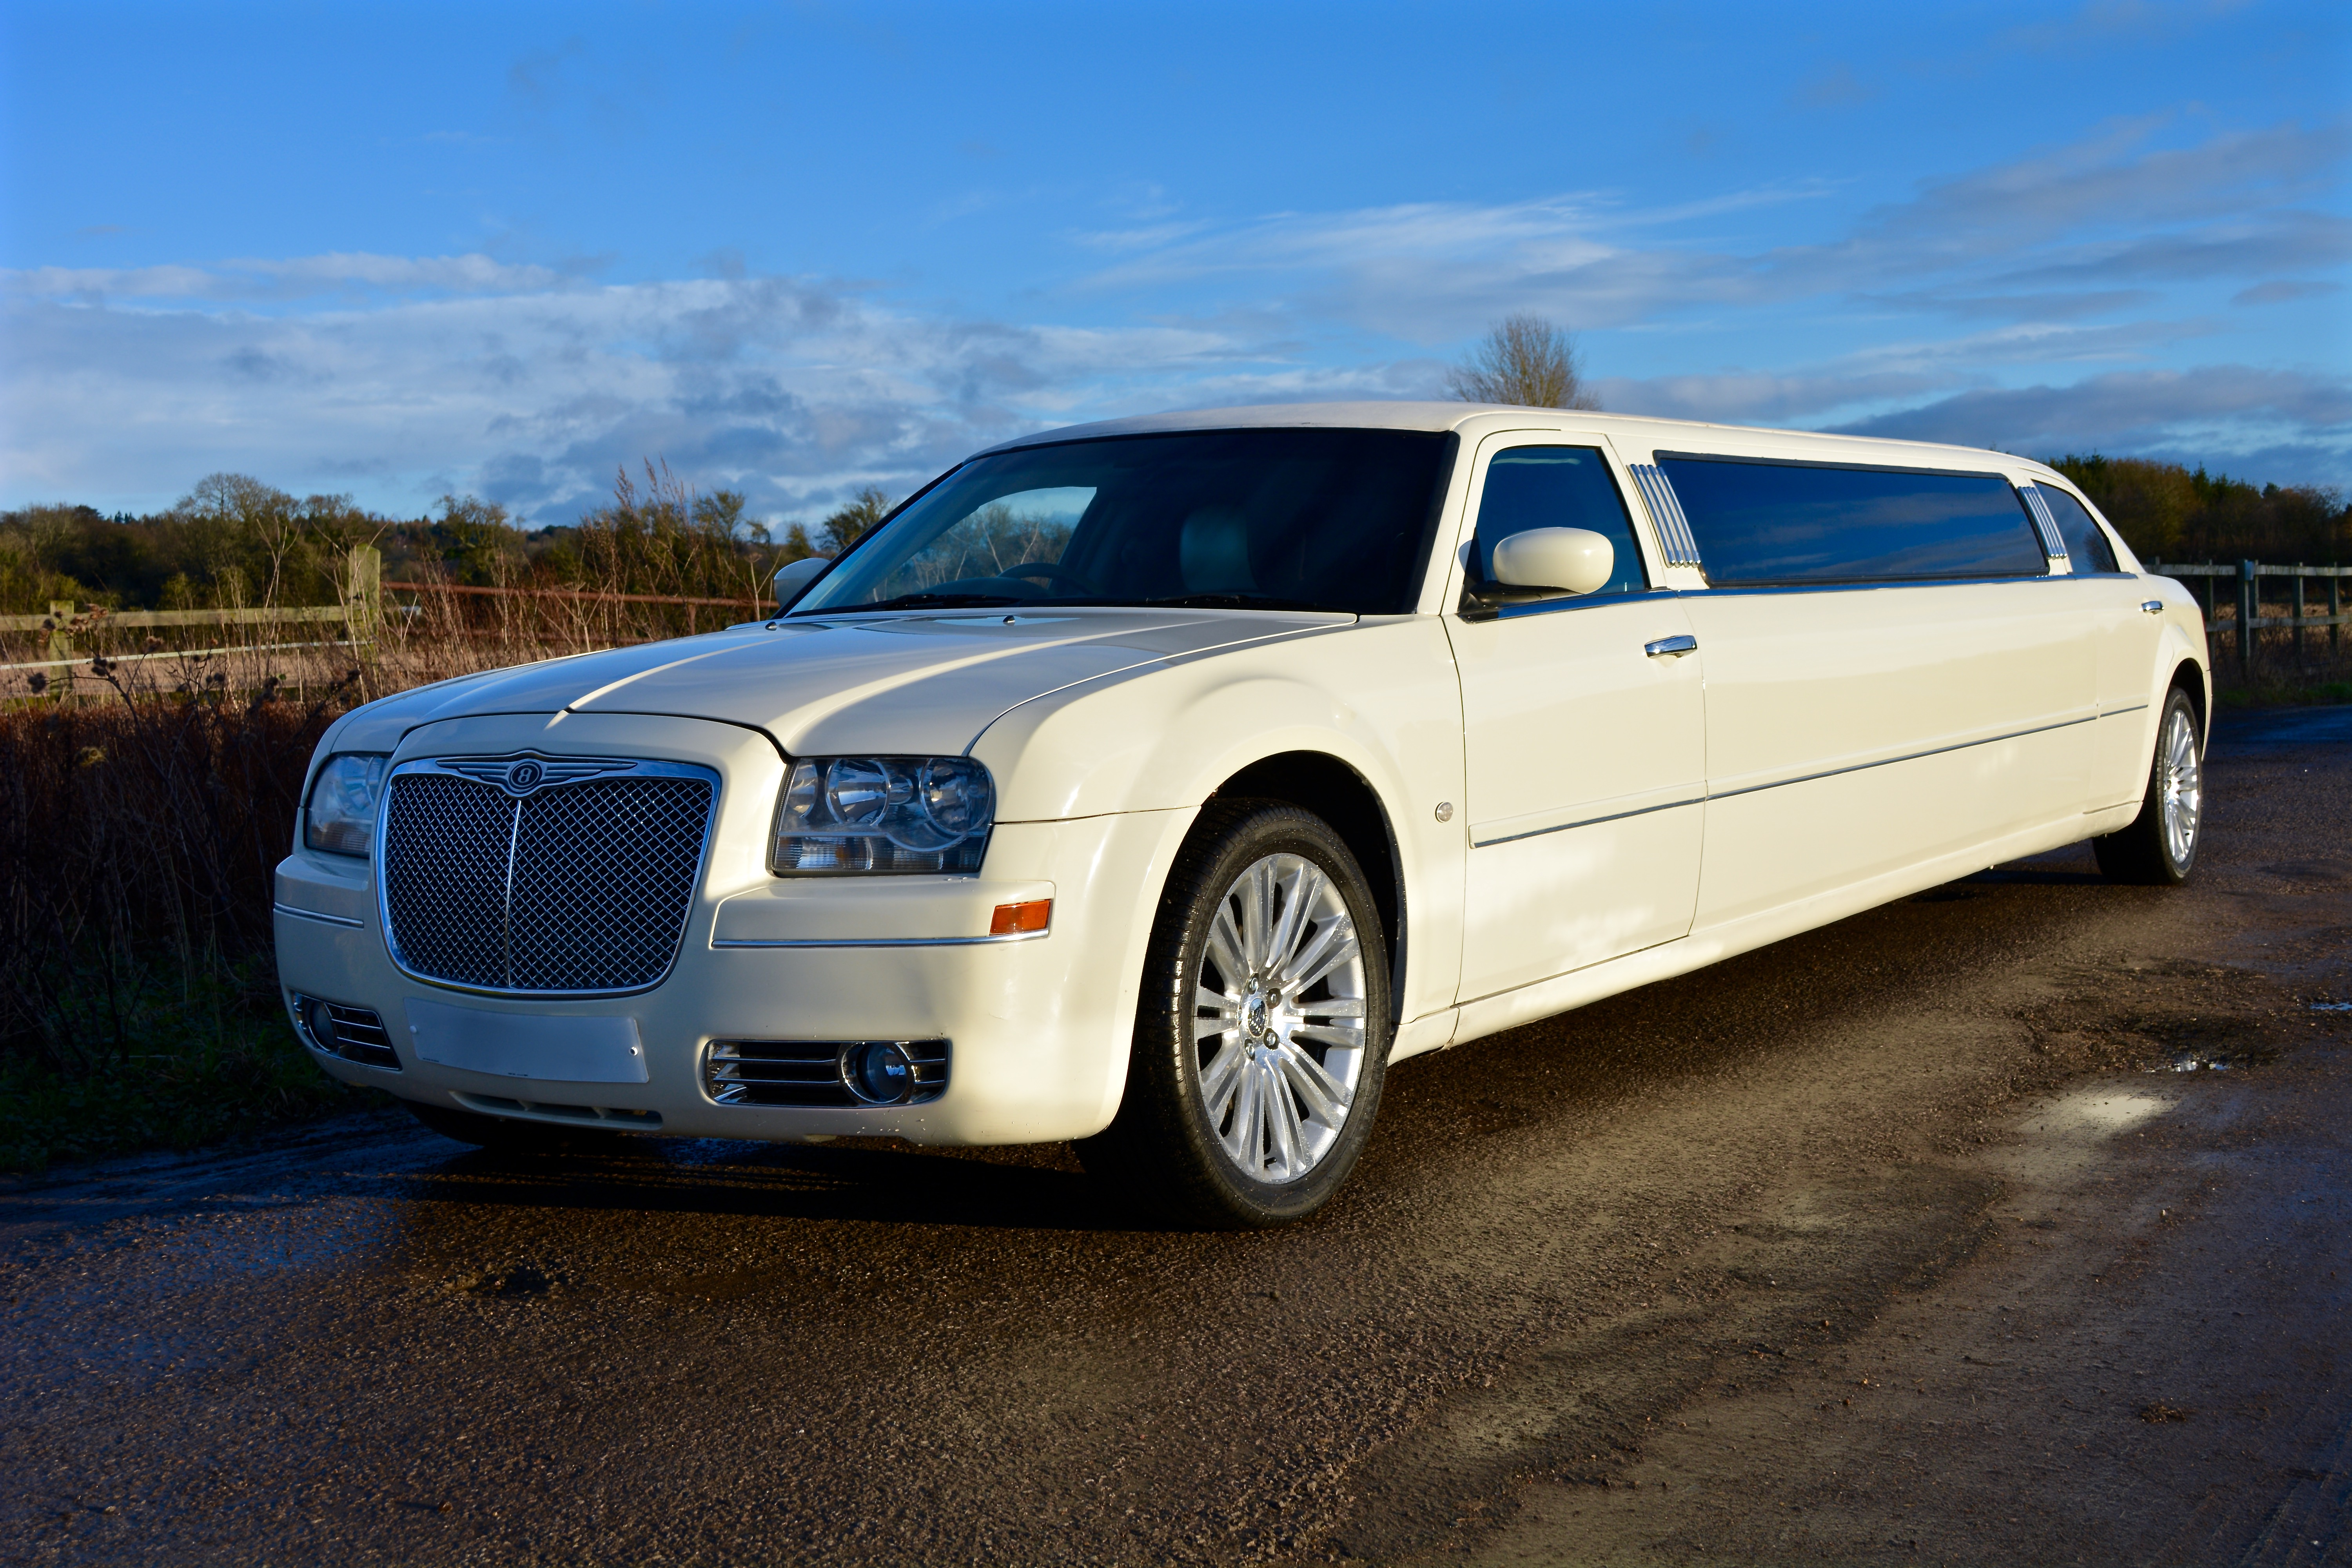 White Chrysler Limo Hire Oxford - The Oxford Limo Company